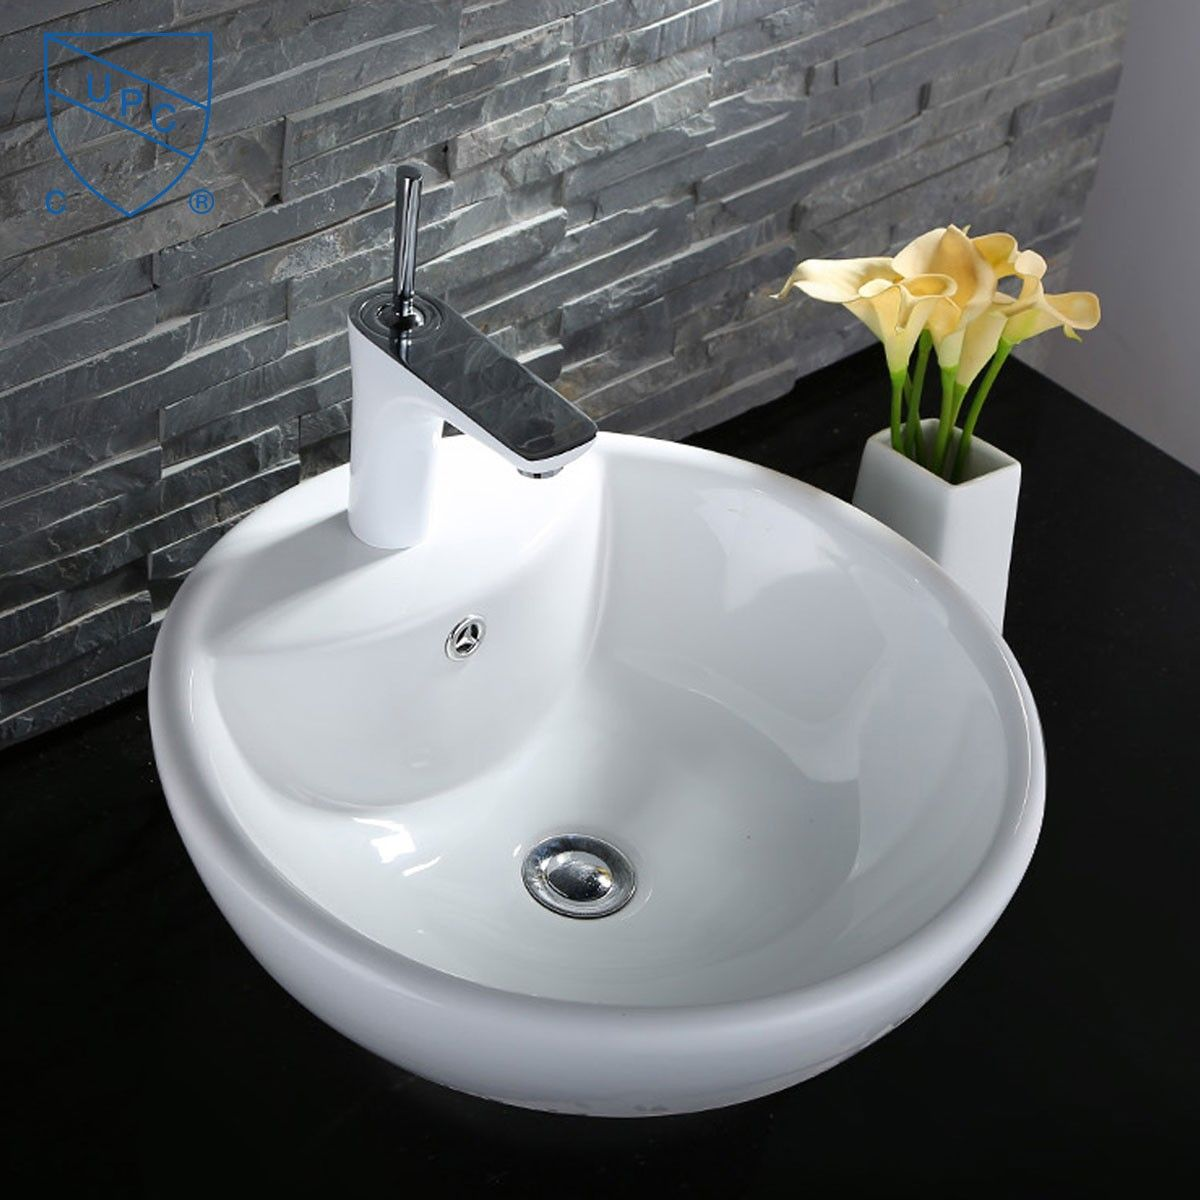 Above counter bathroom sinks canada - Decoraport White Round Ceramic Above Counter Vessel Sink Cl 1042